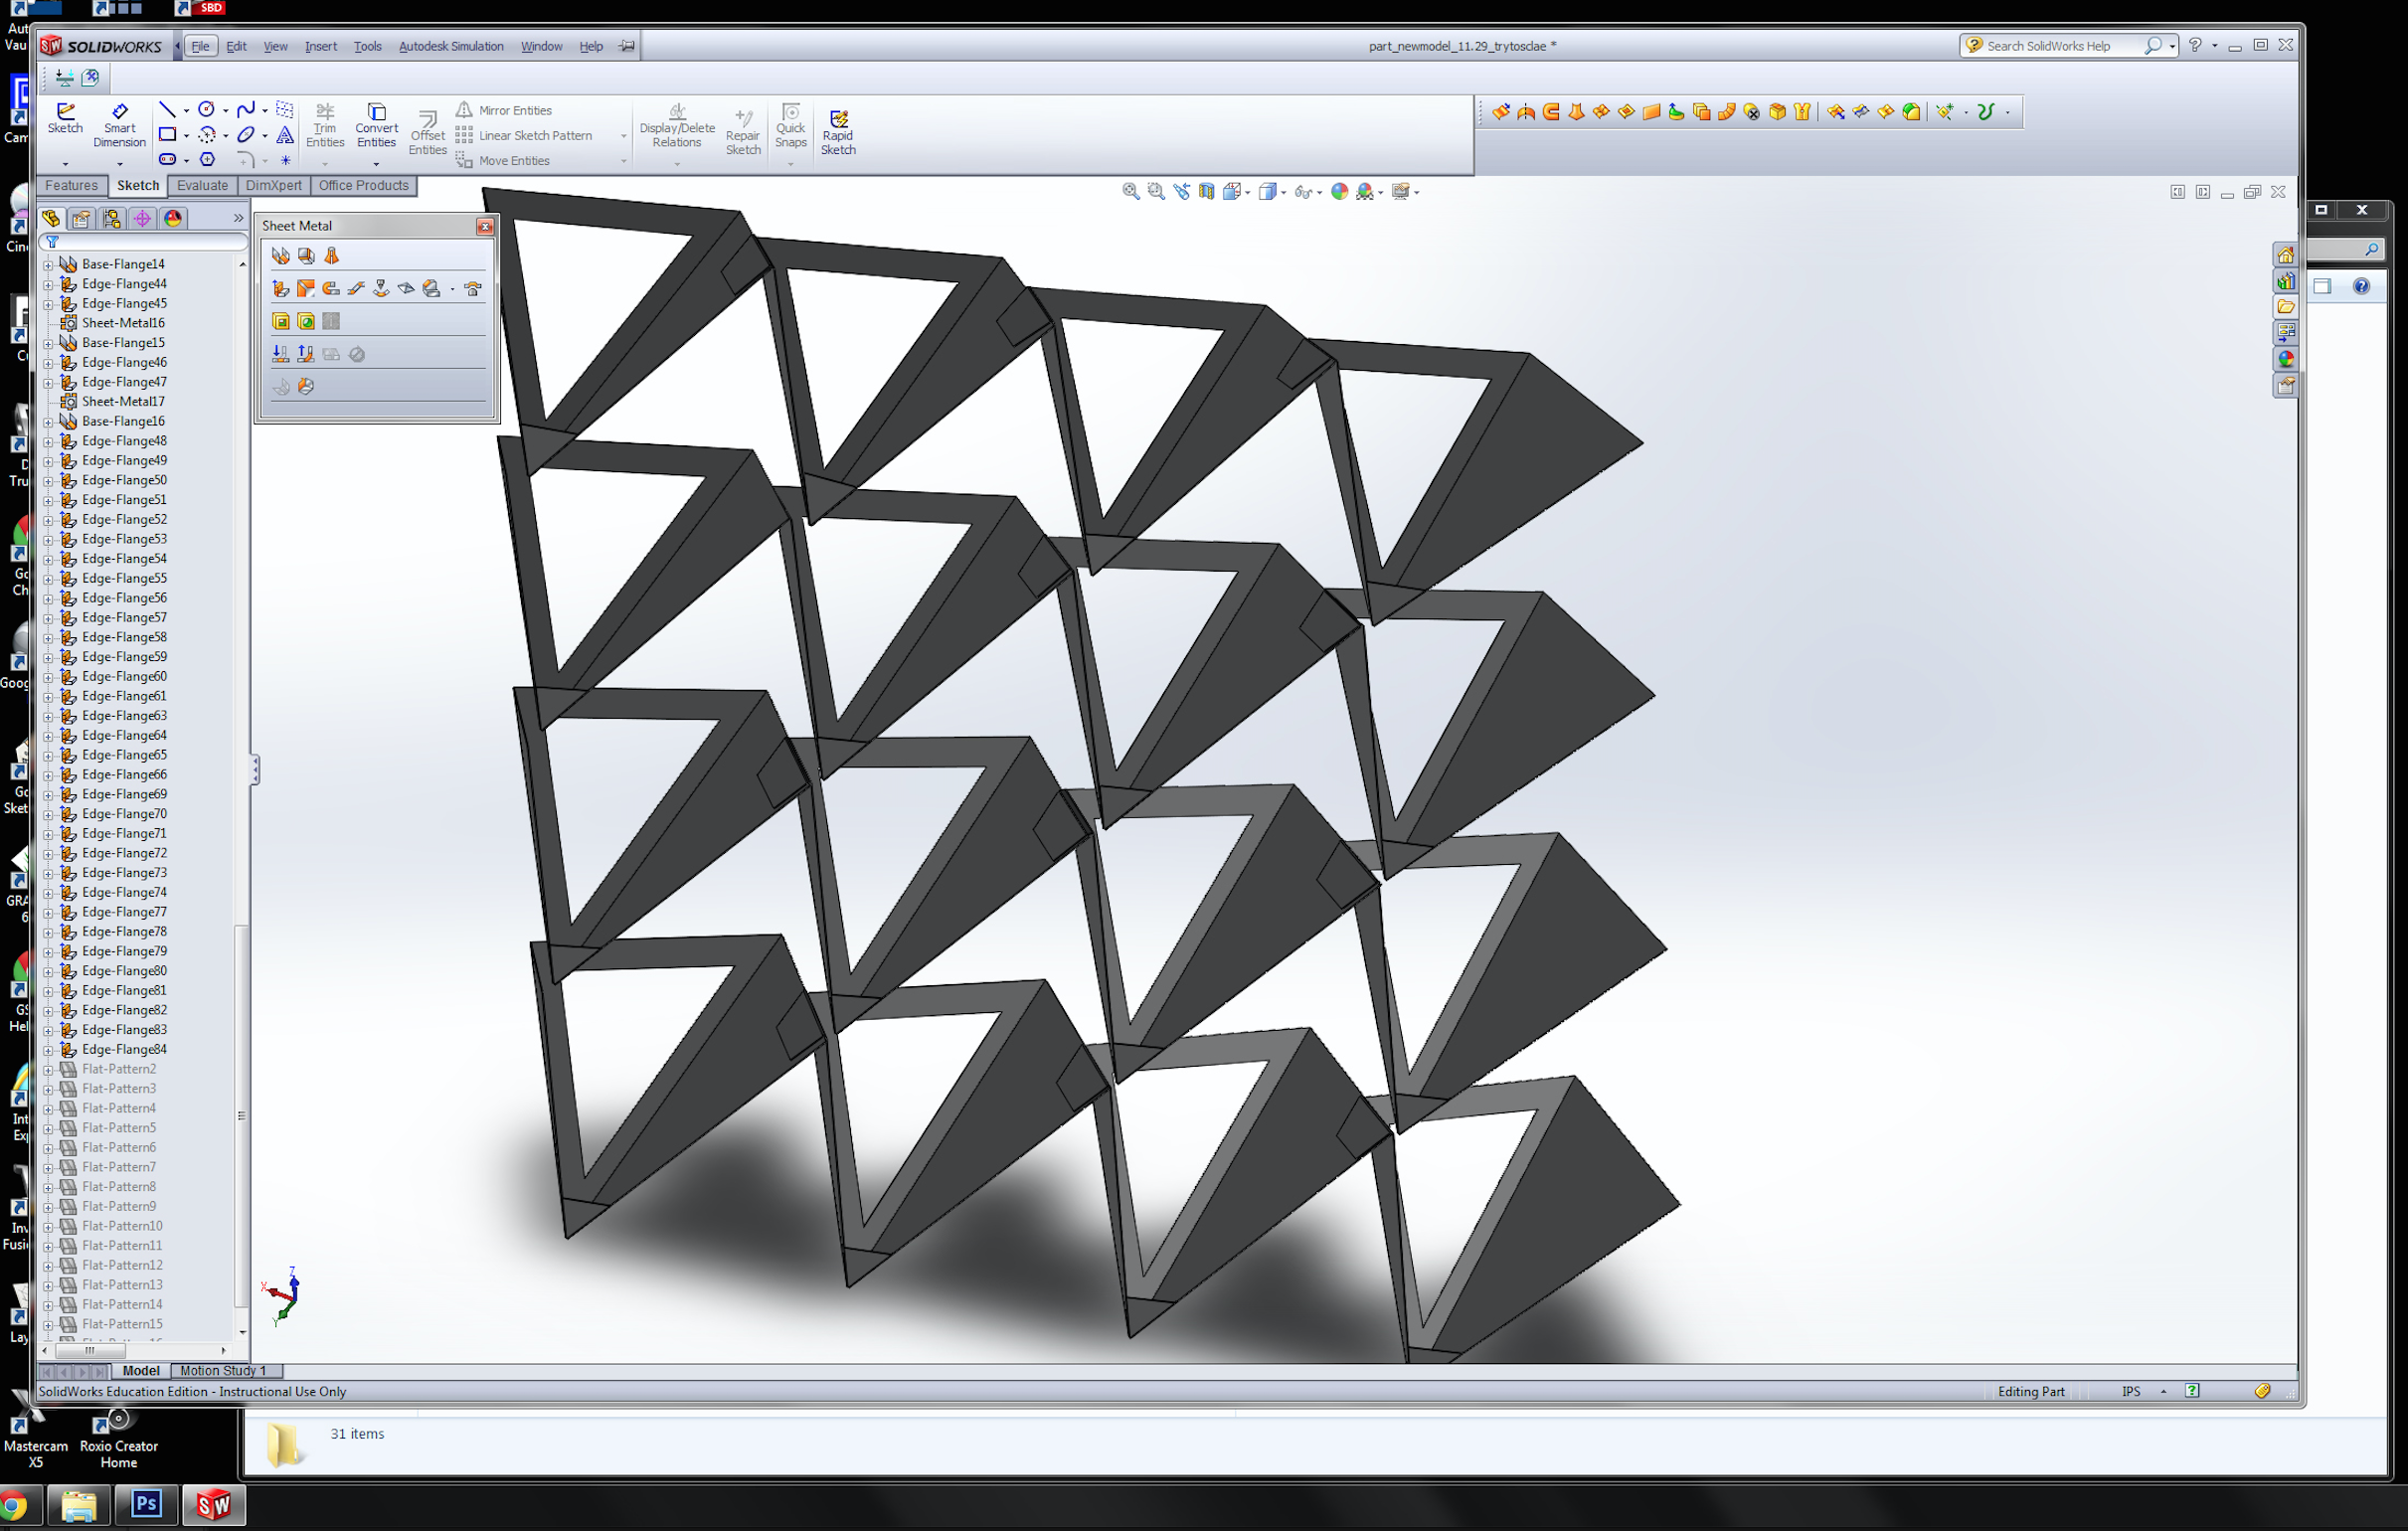 Sheet metal cut files exported from Solidworks. Sheet metal cutting courtesy of Maloya Laser.